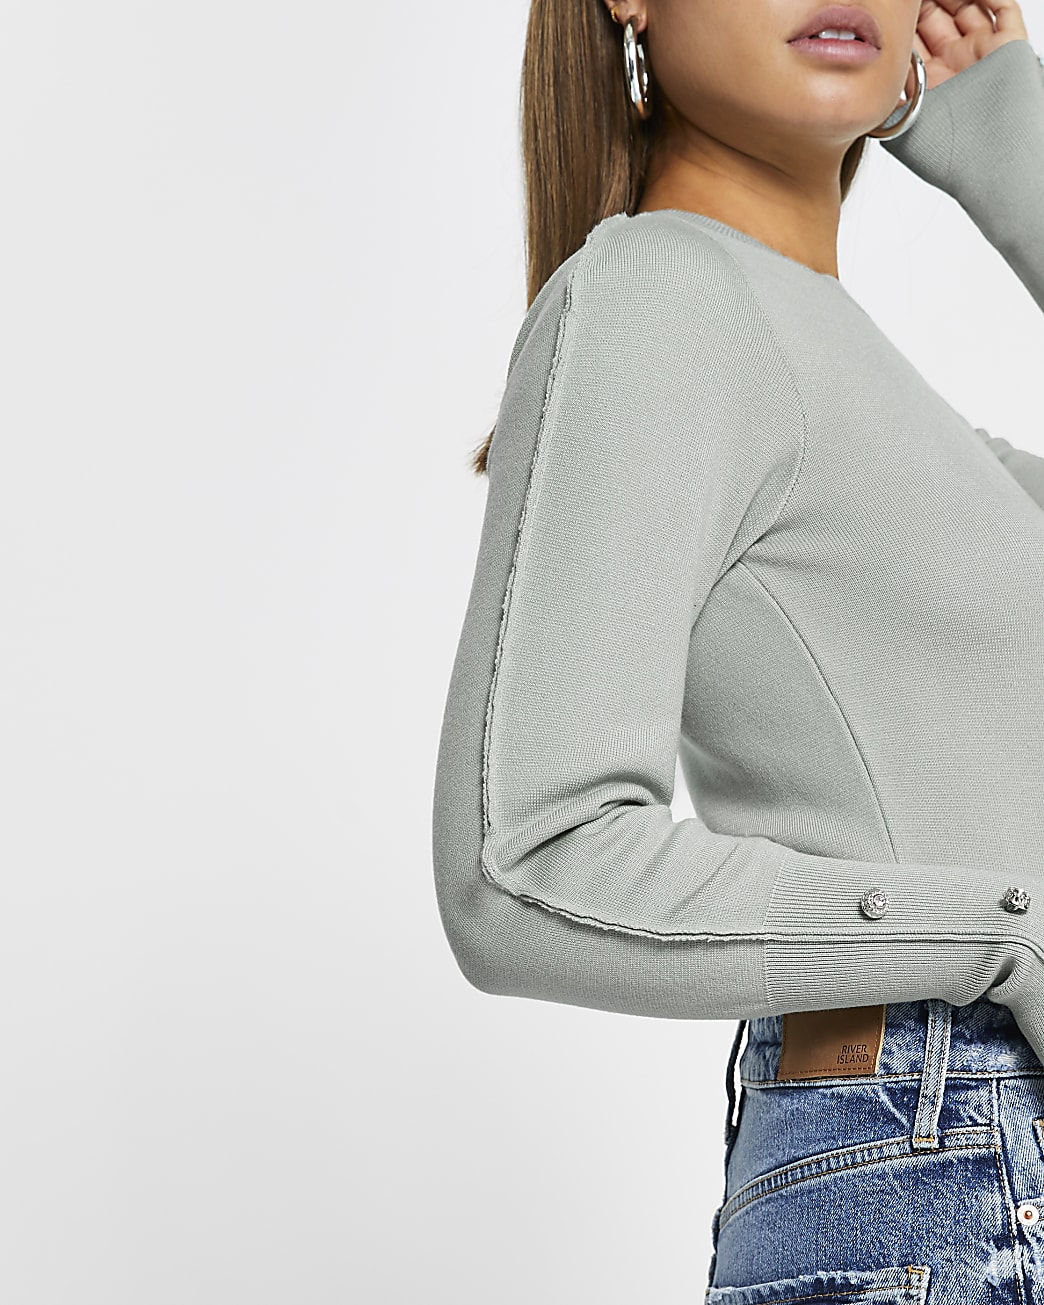 Green embellished long sleeve knit top